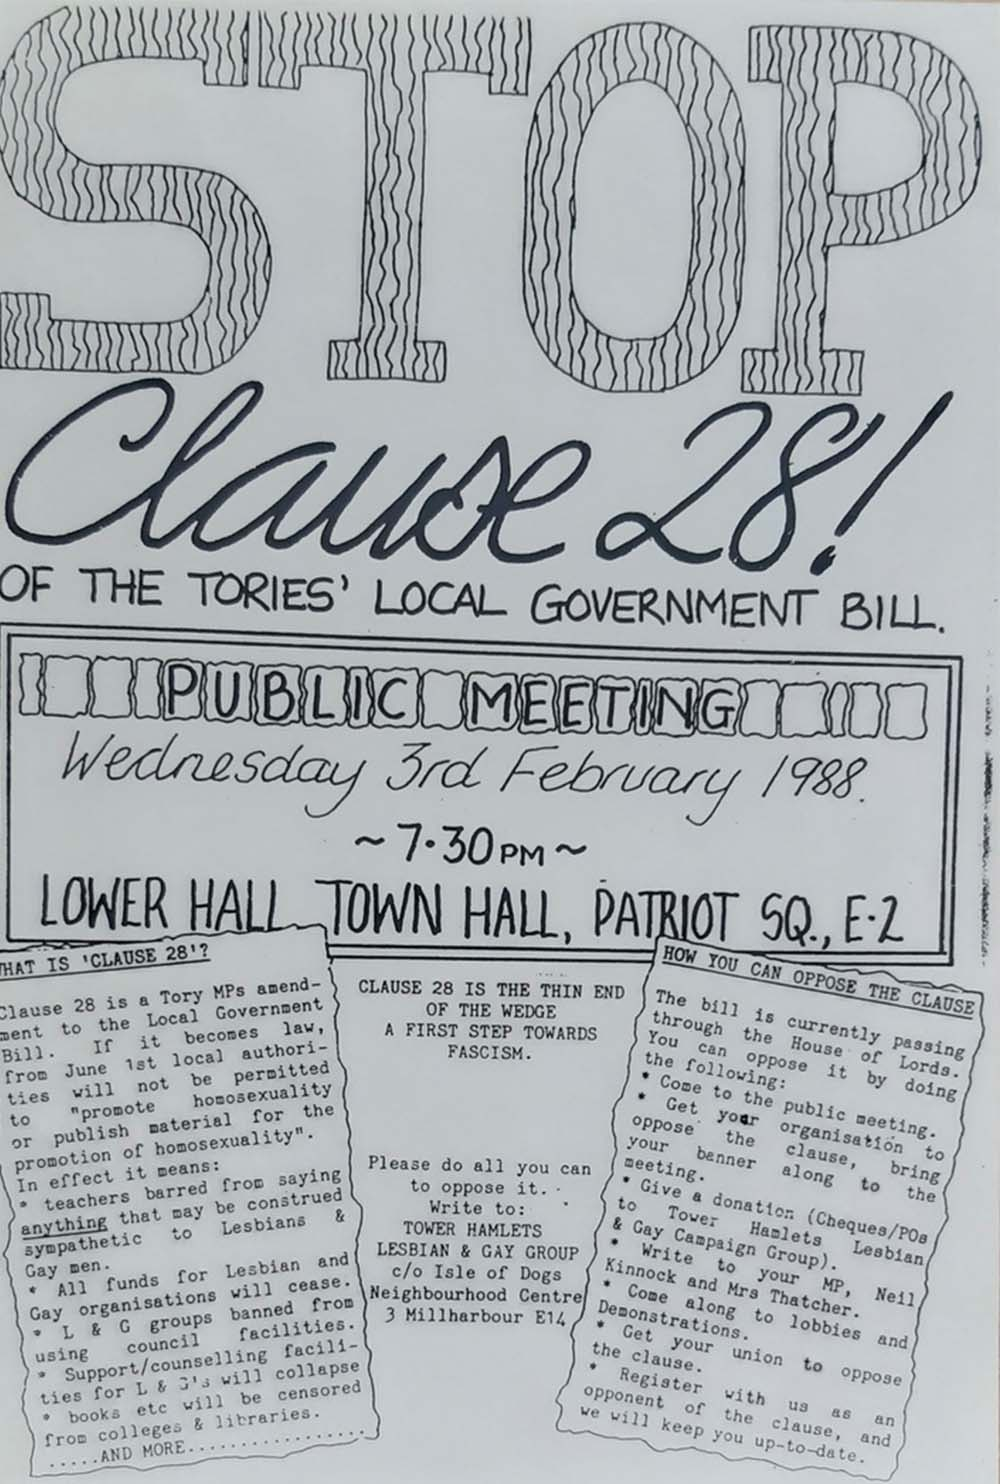 An A4 'Stop Clause 28' poster from the 3rd Feb 1998